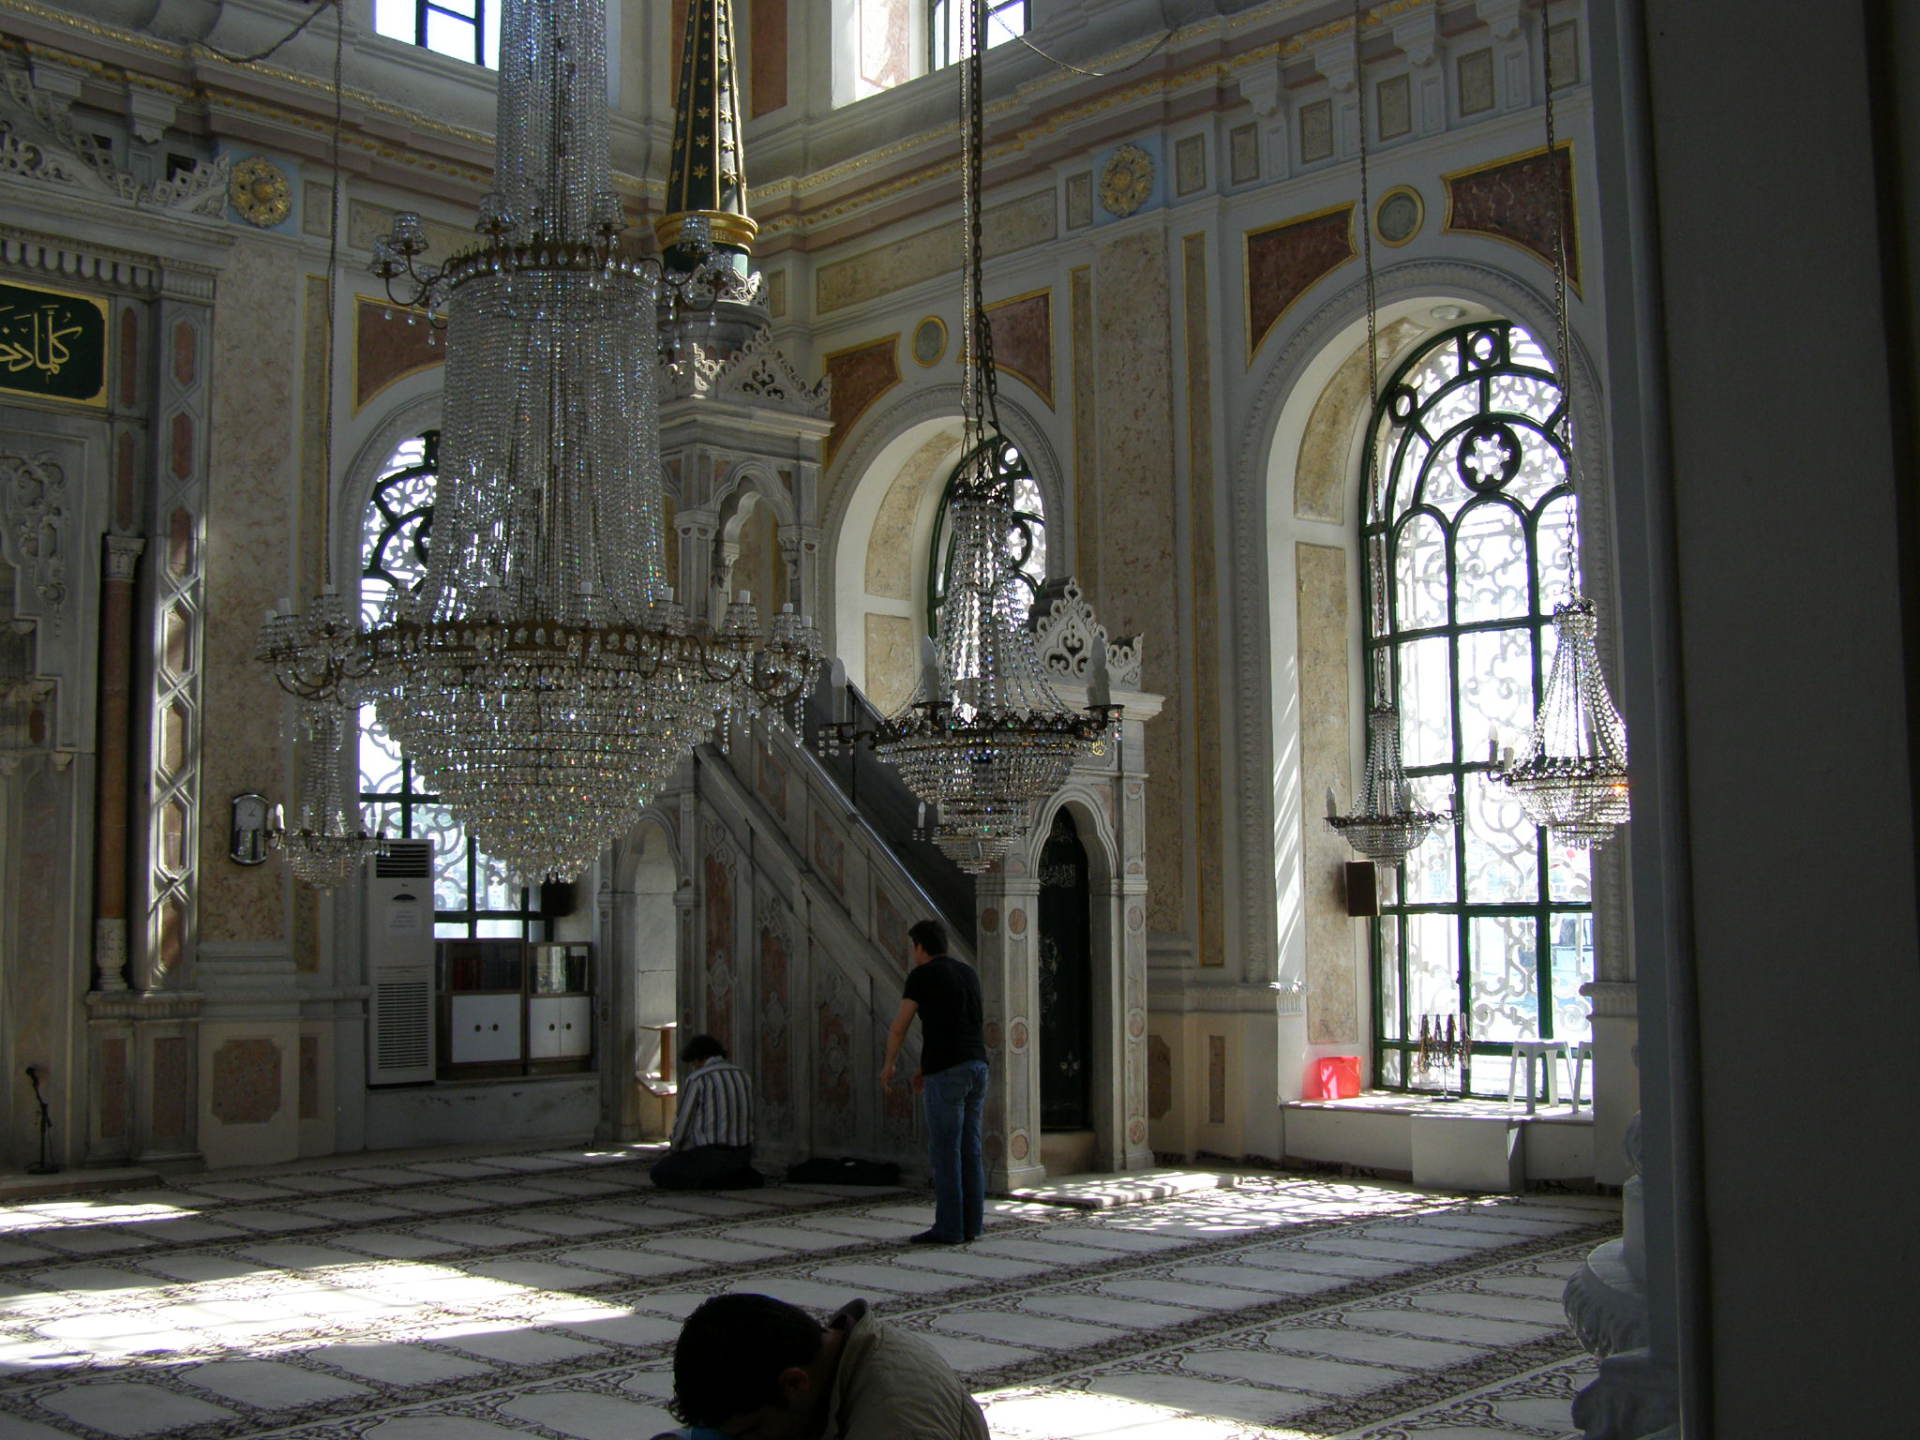 I'd miss the splendor of Turkey's mosques, especially the  ornate Ortaköy Mosque. Istanbul, Turkey: chapter 58, You must only to love them. http://mershon.wordpress.com